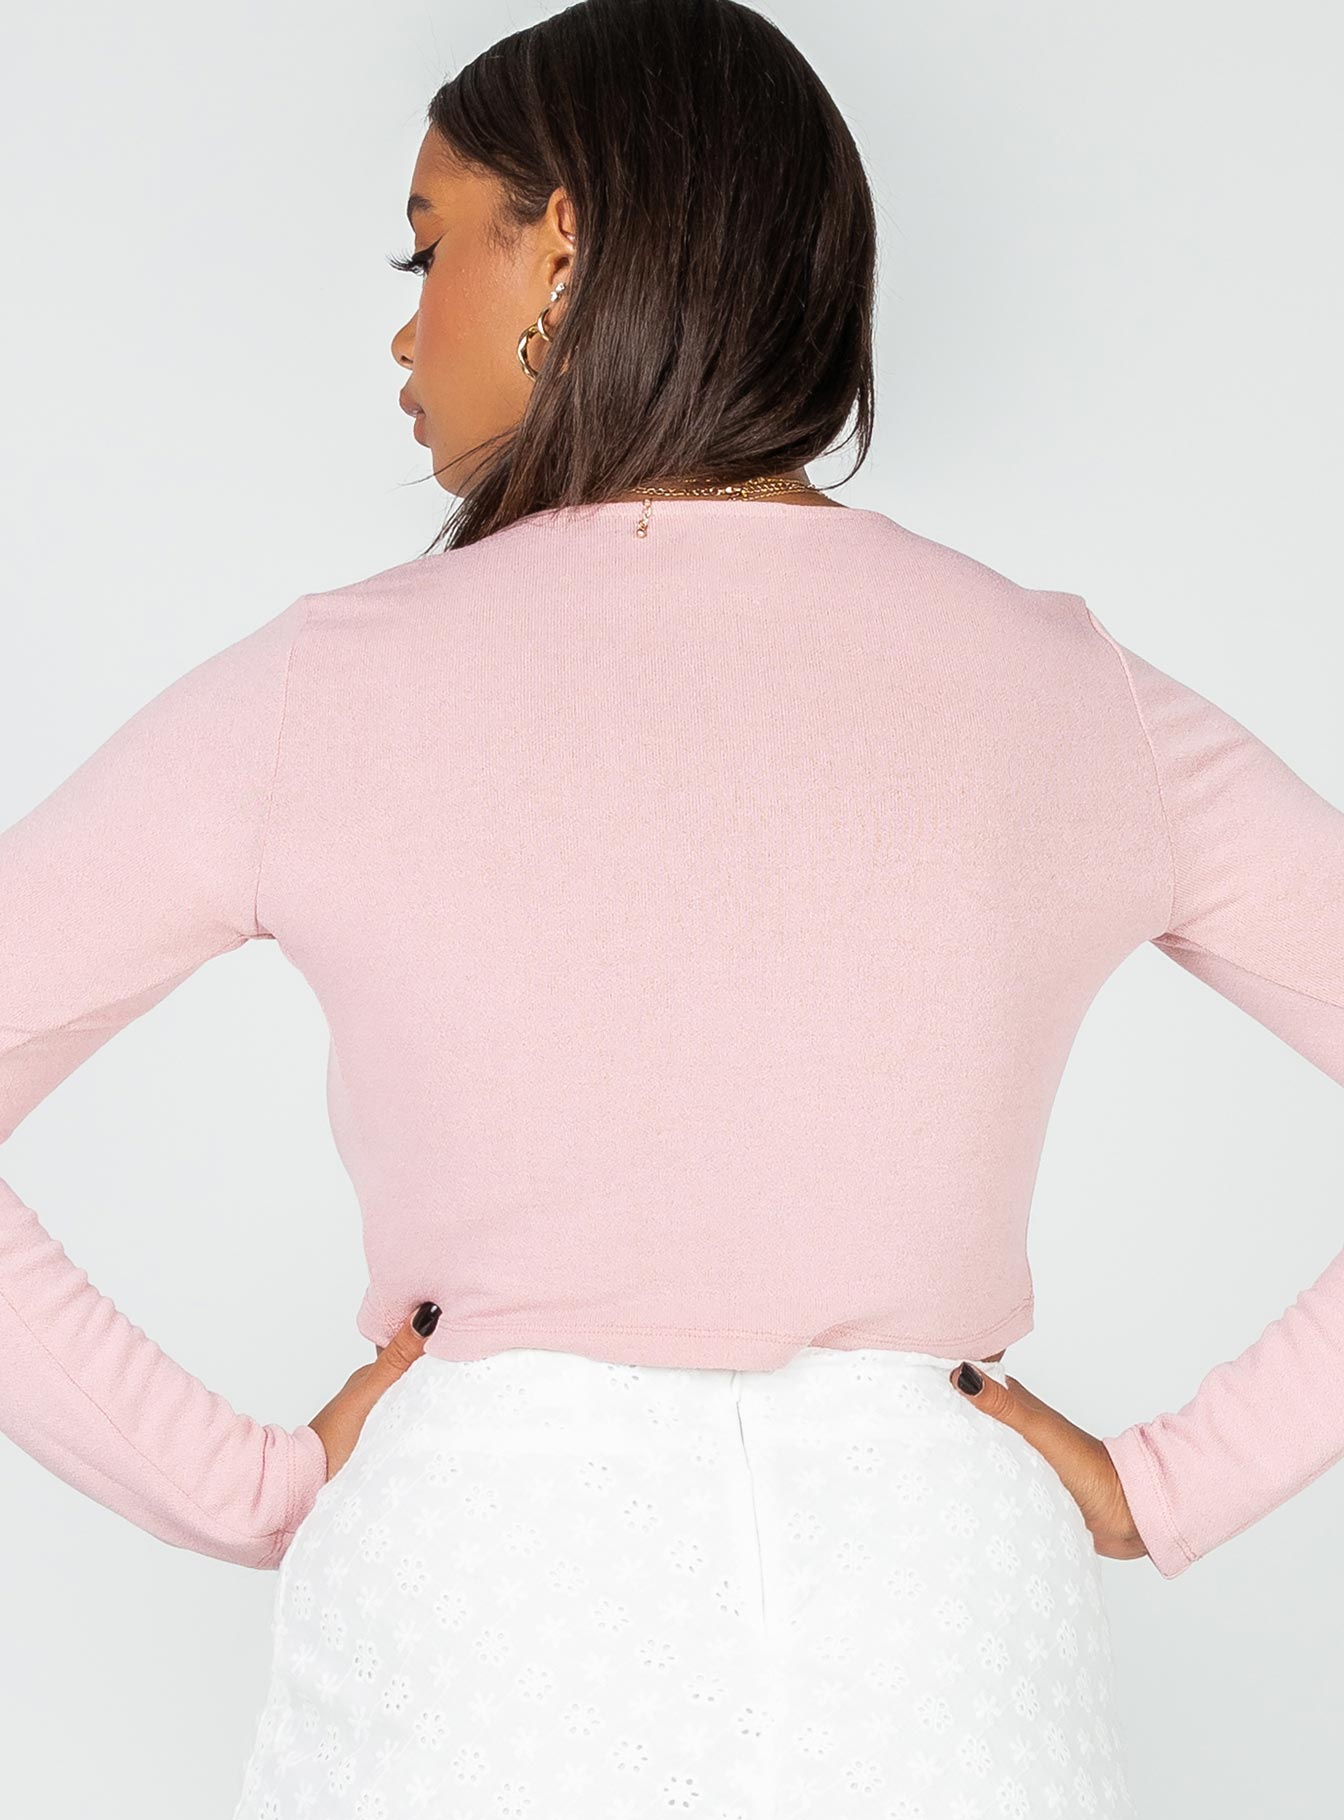 Ailsay Top Pink